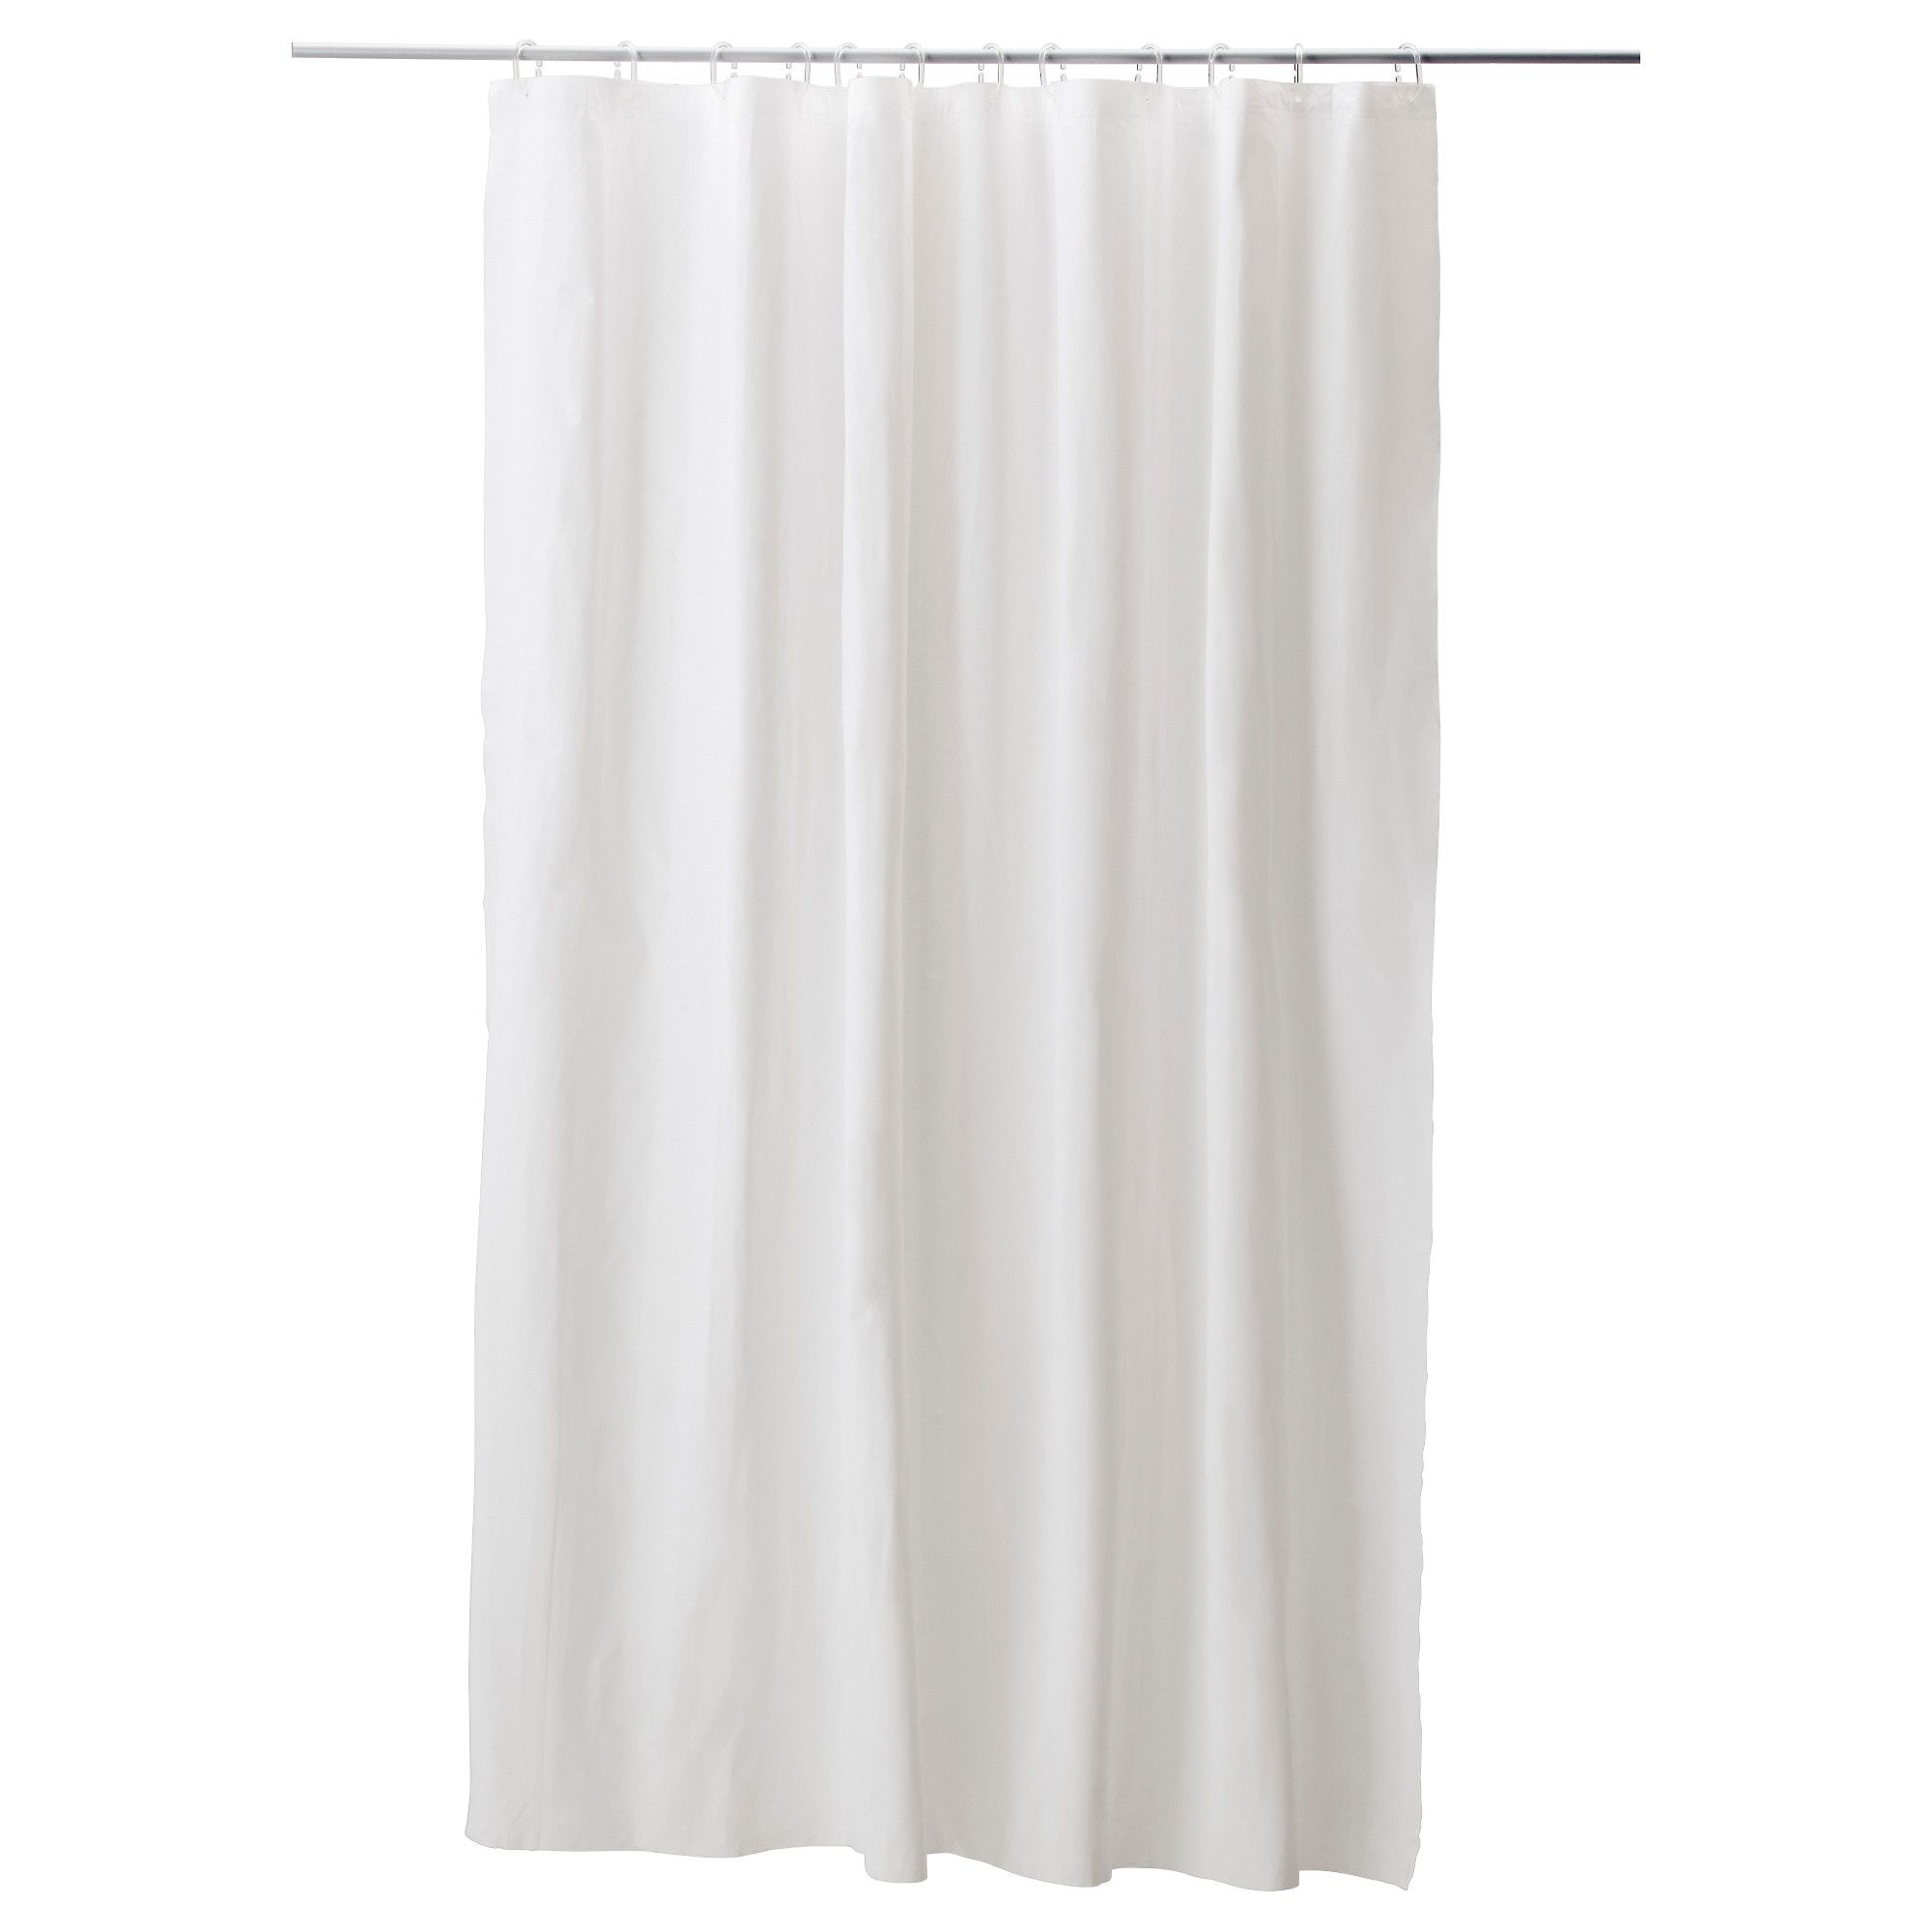 Eggegrund Shower Curtains Ikea With Images White Shower Curtain Bathroom Shower Curtains Curtains